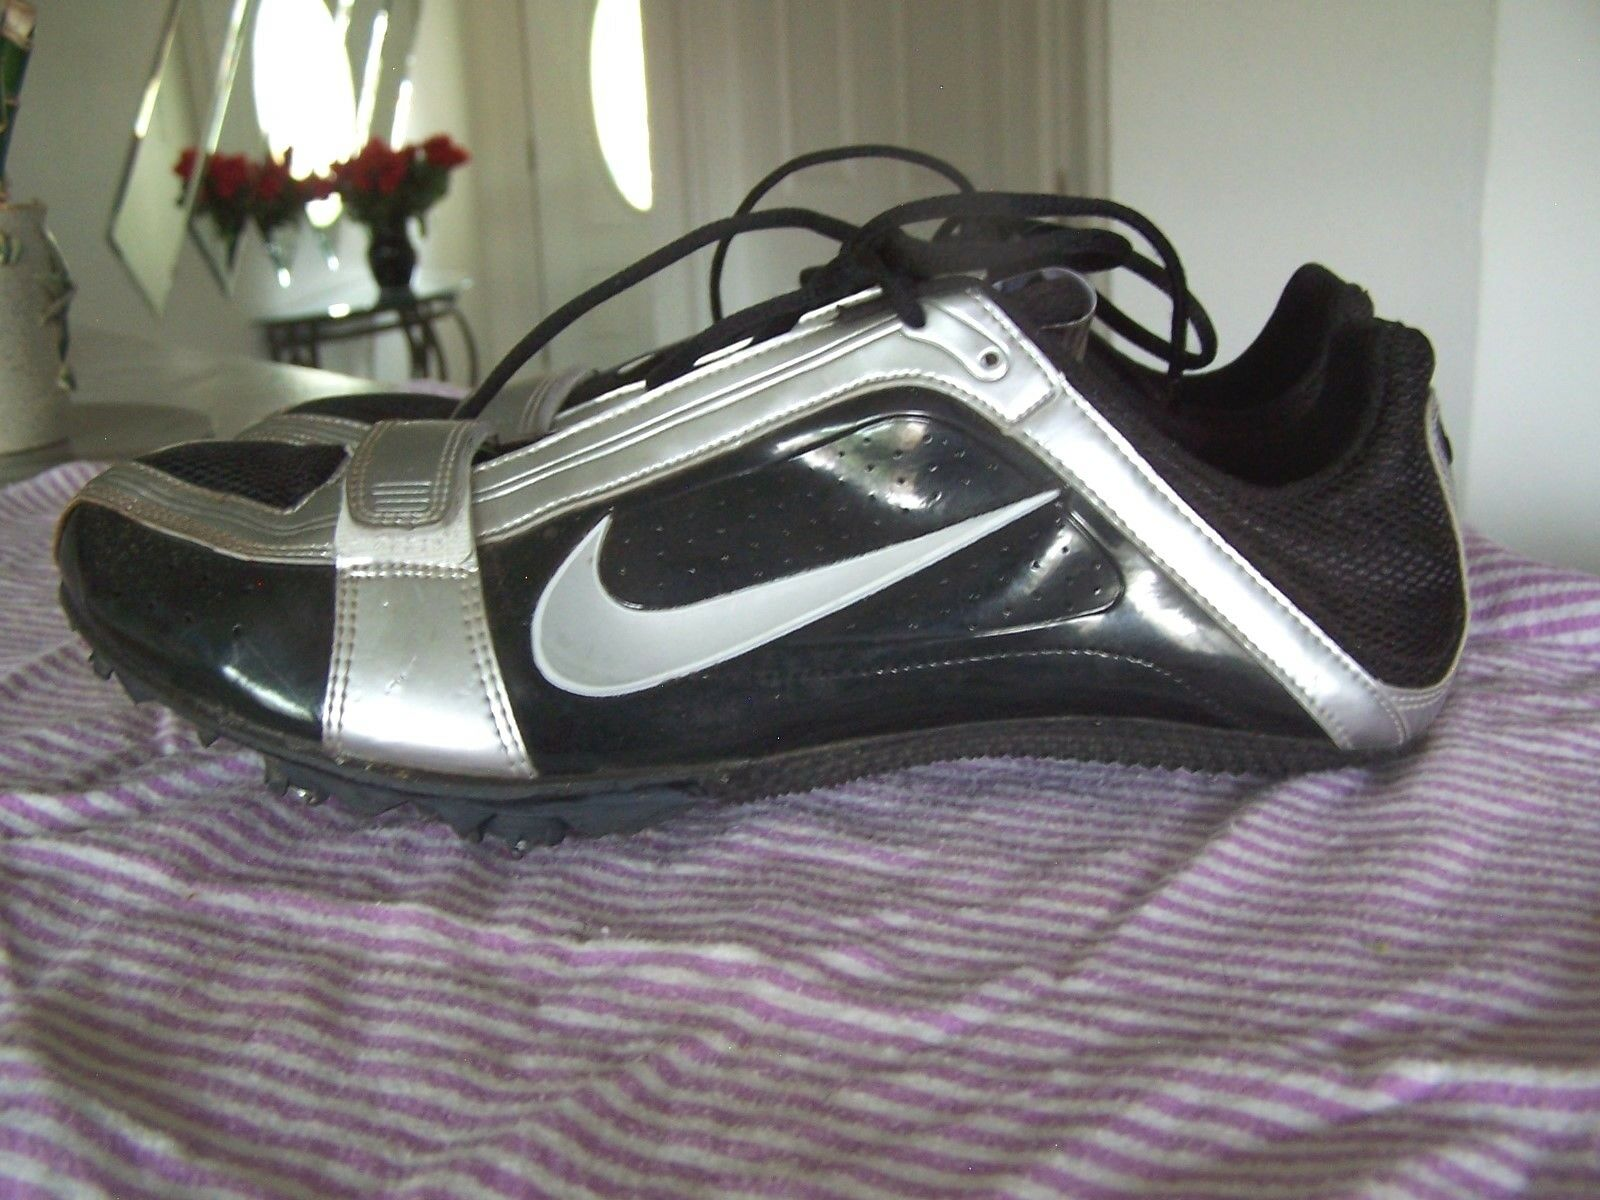 NIKE Bowerman Mens Athletic Track & Field Black Silver Lace Up Shoes Comfortable